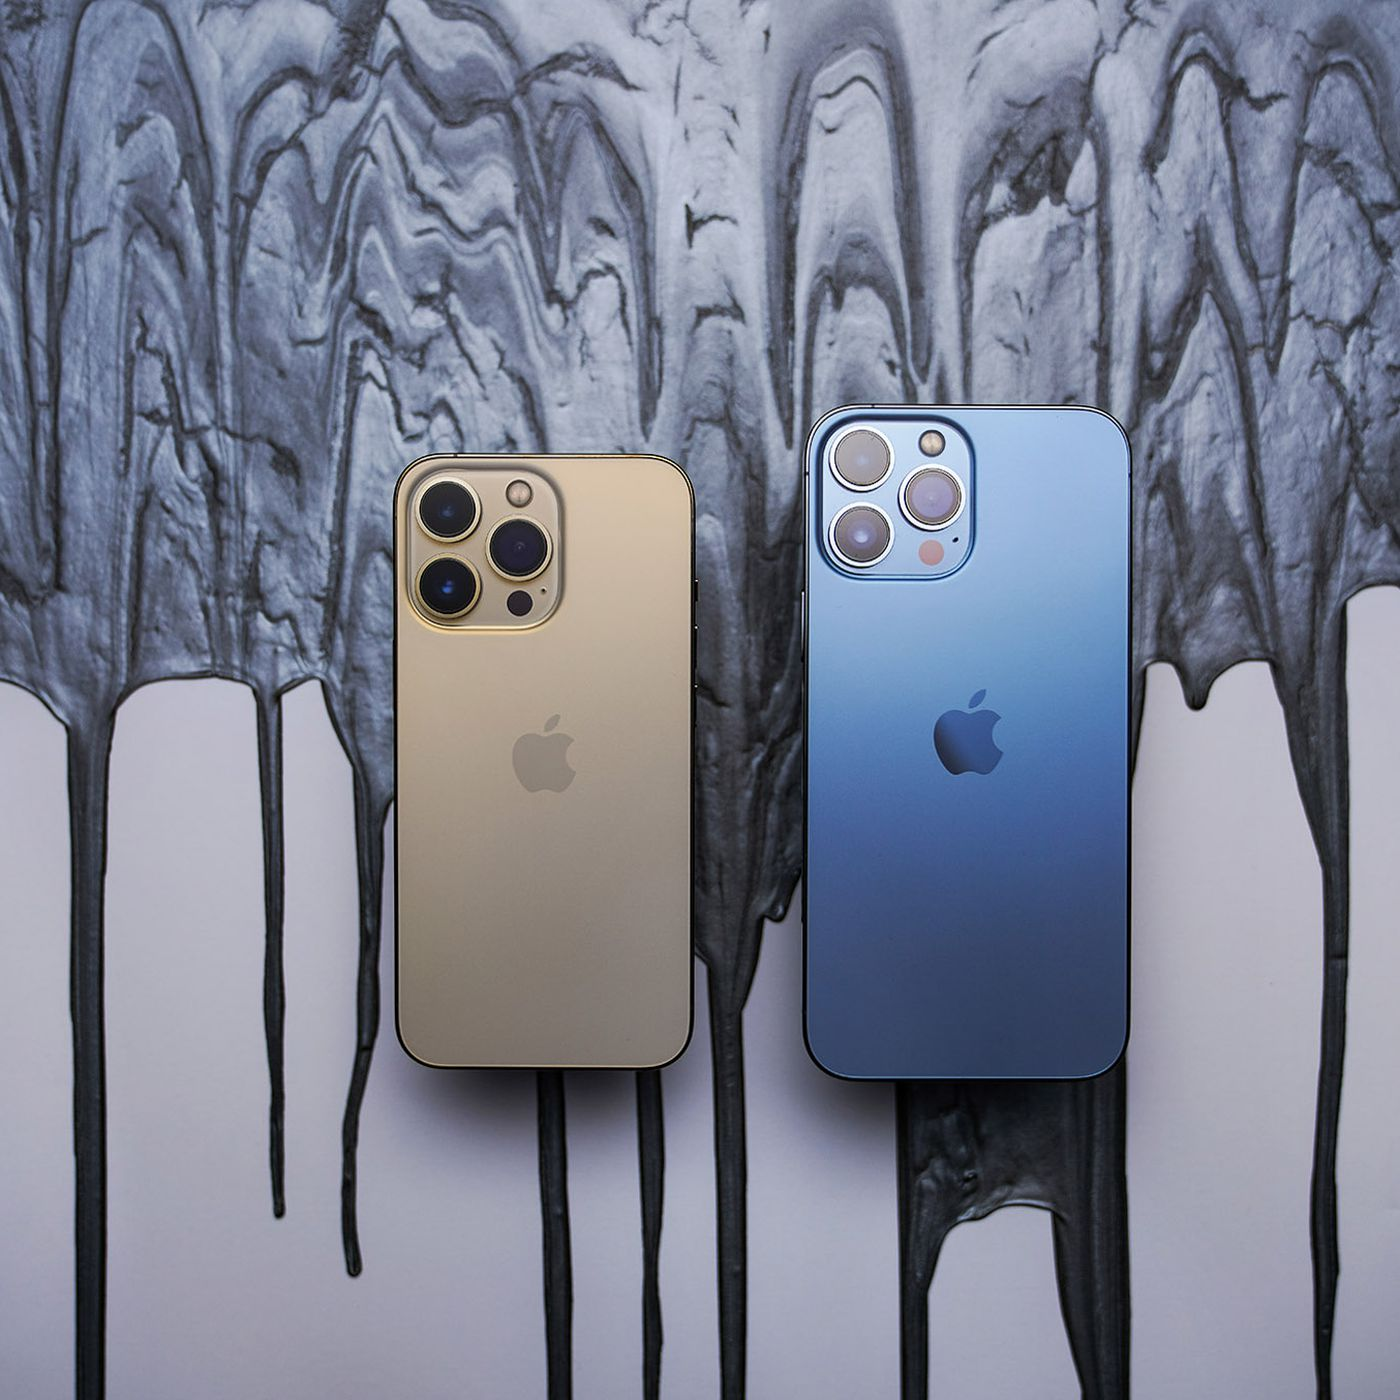 Each iPhone 13 Pro costs $570 to produce